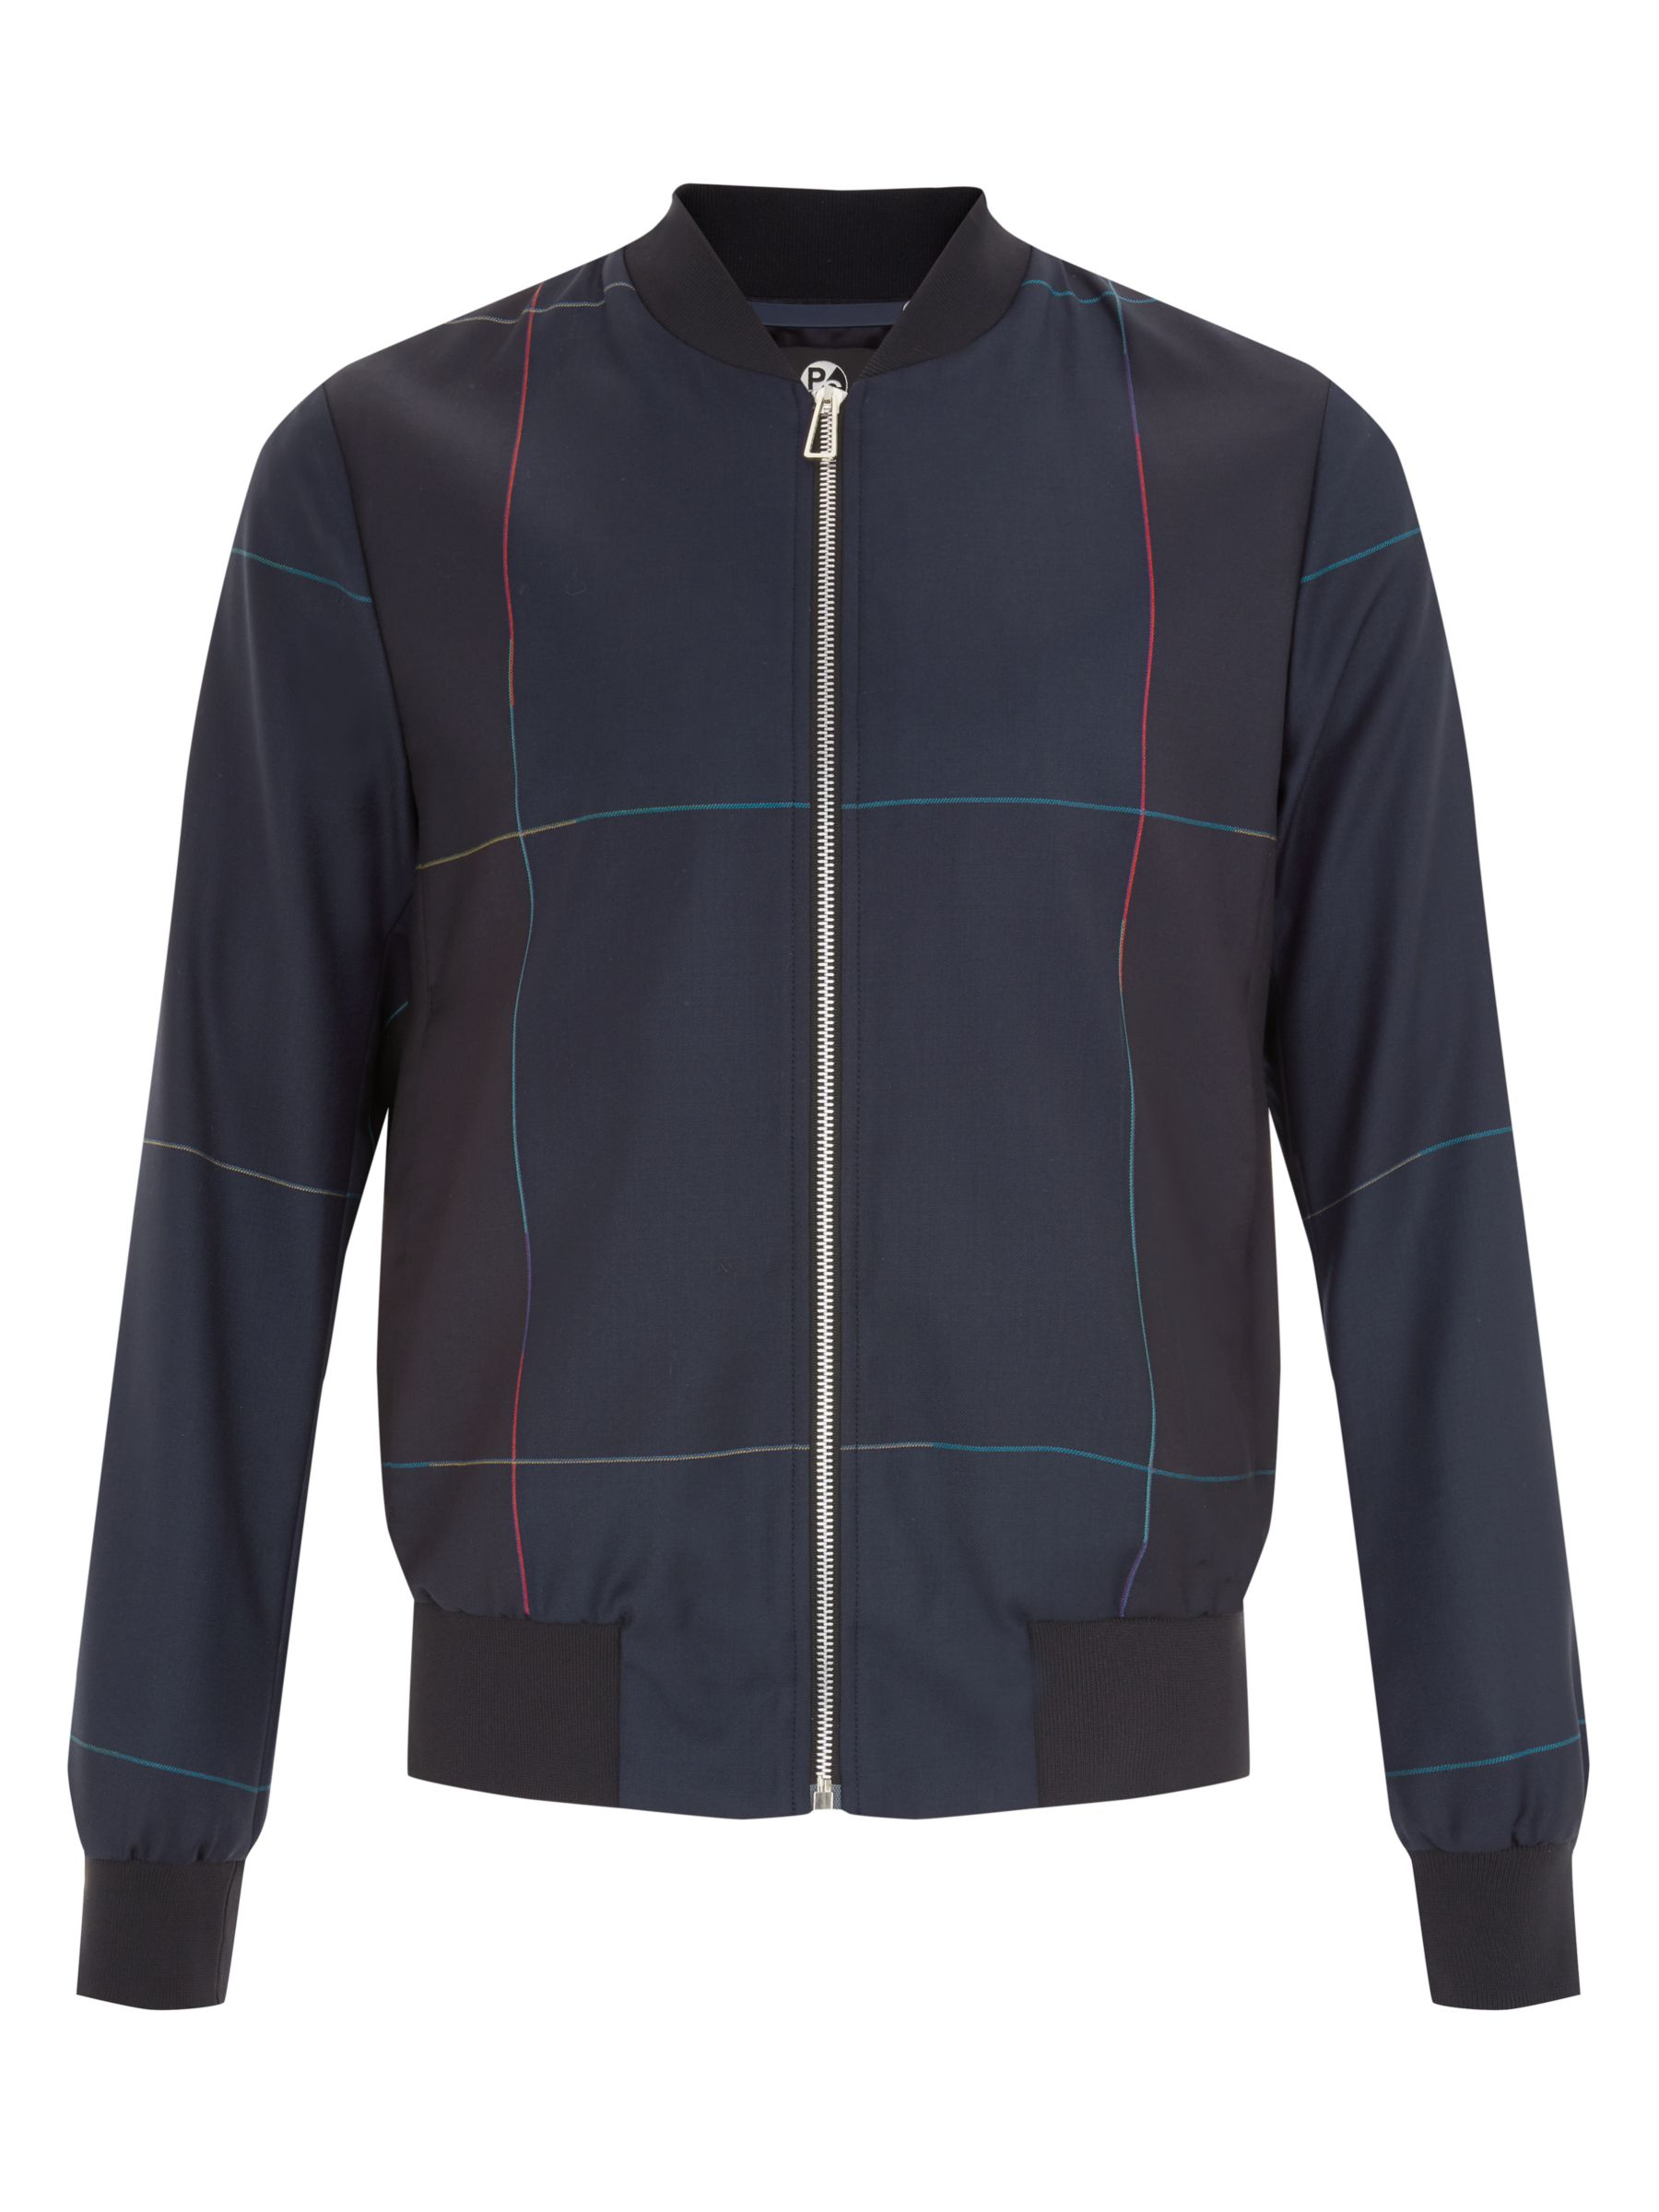 PS by Paul Smith Windowpane Check Wool Bomber Jacket